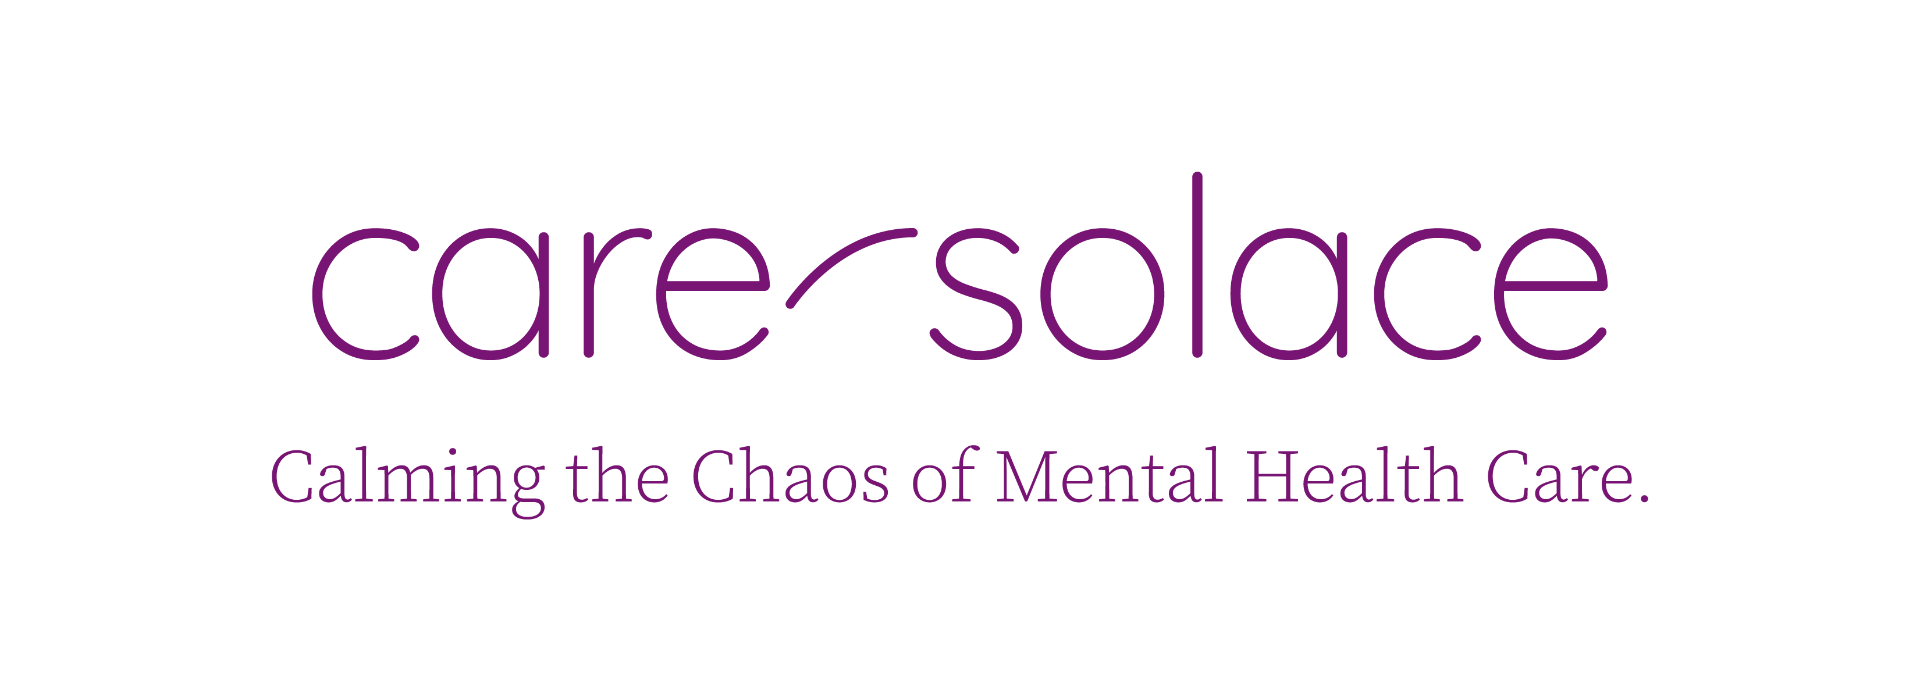 Care-Solace mental health services logo